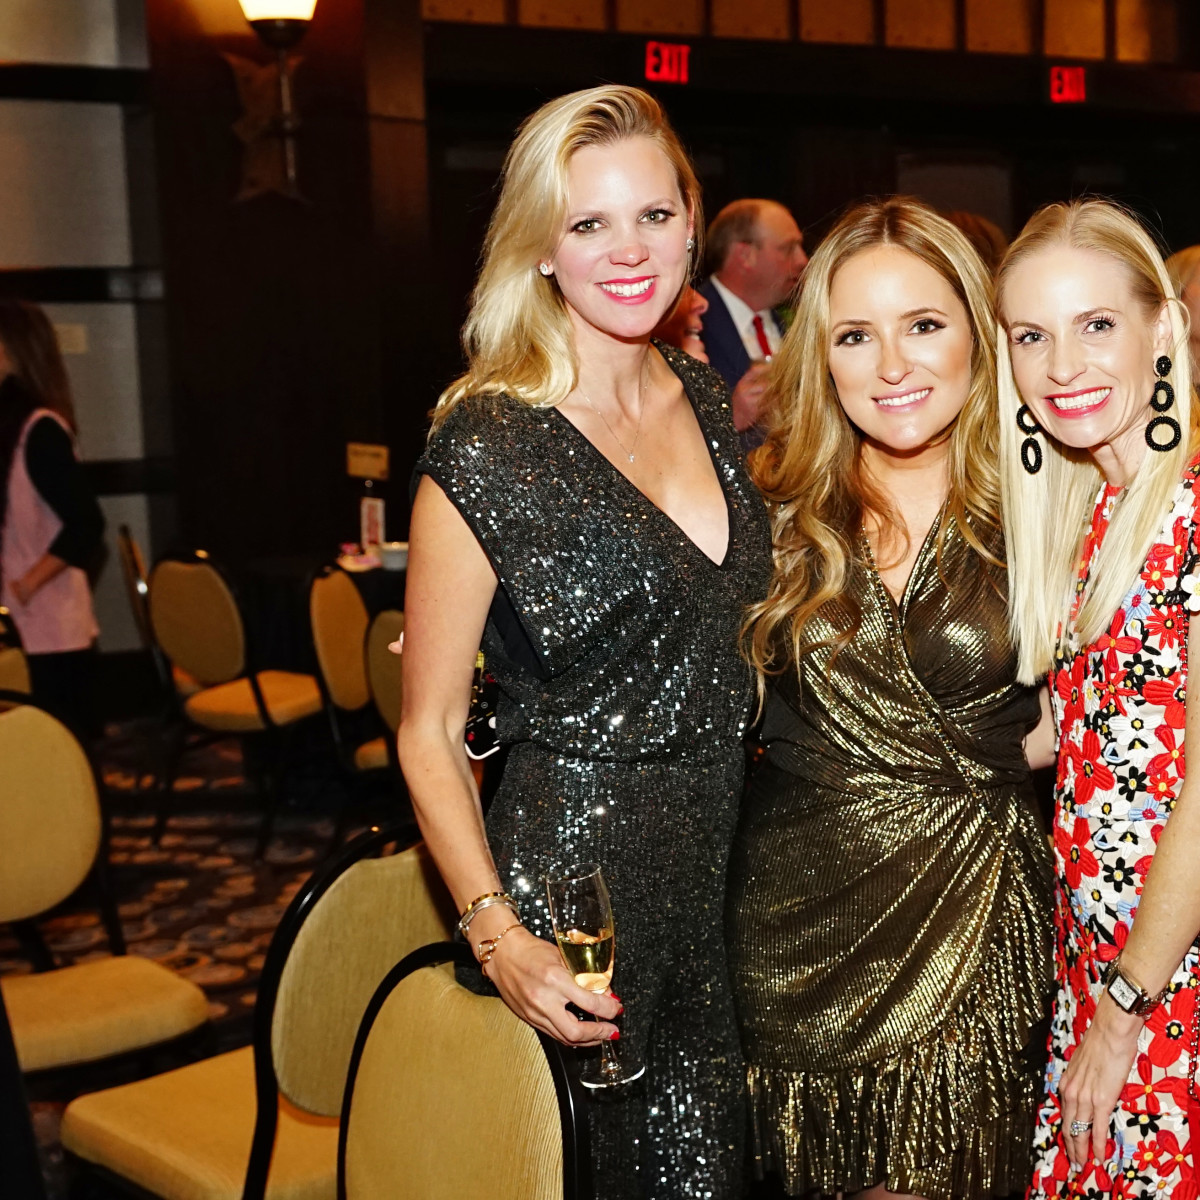 Rodeo Trailblazer Awards Luncheon 2020 Erin Hall, Stephanie Montalbano and Jill Smith